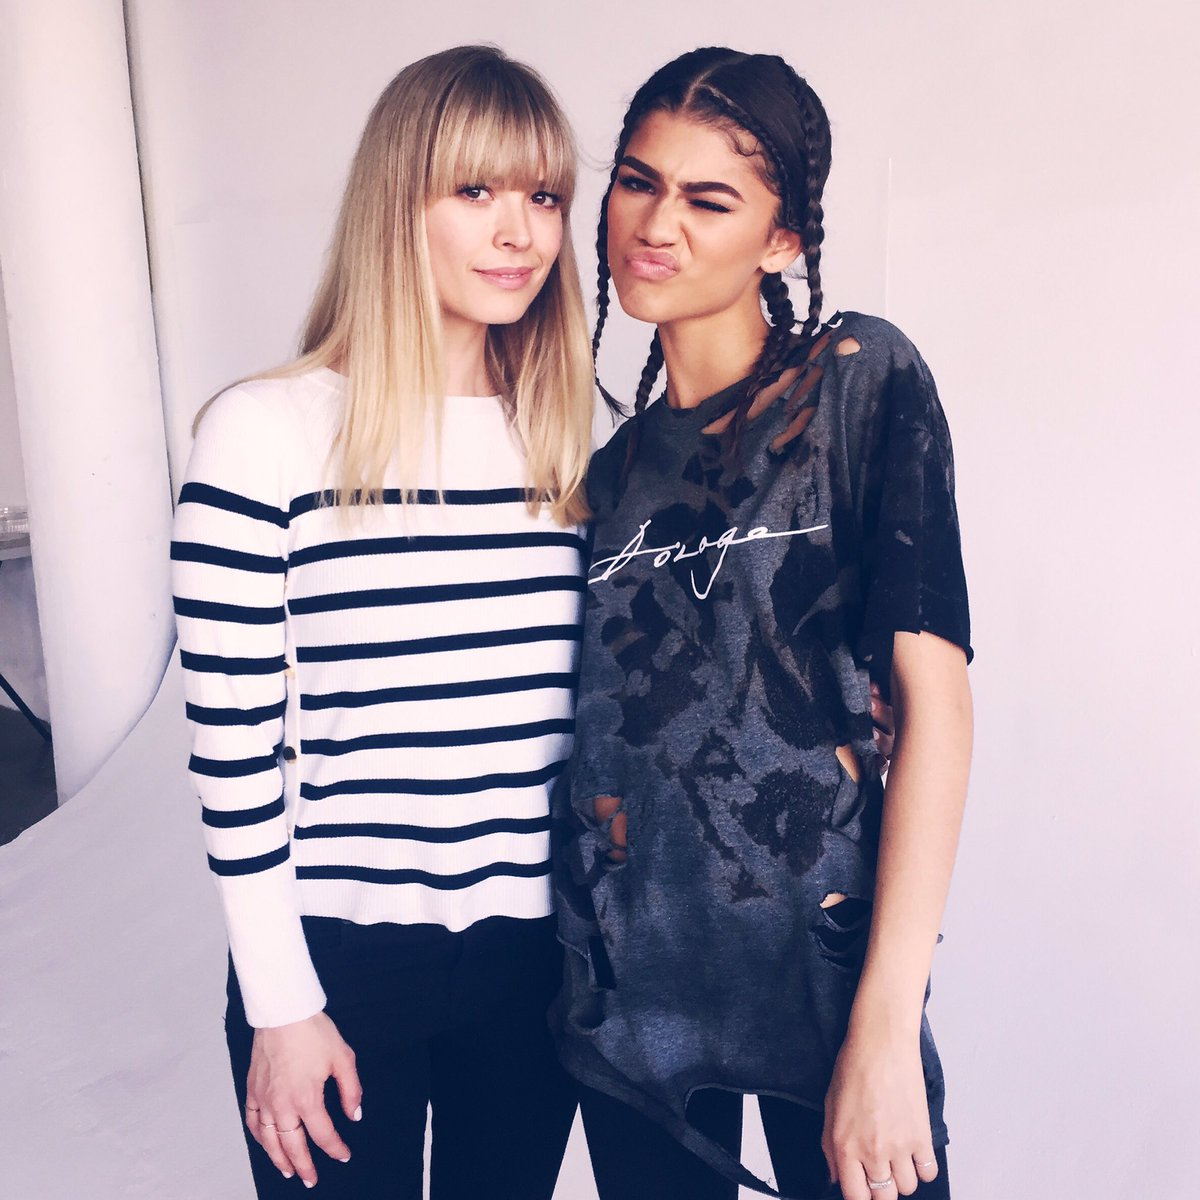 What a Daya. Great shooting with the smart and gorgeous @Zendaya https://t.co/sFny9tqGHG